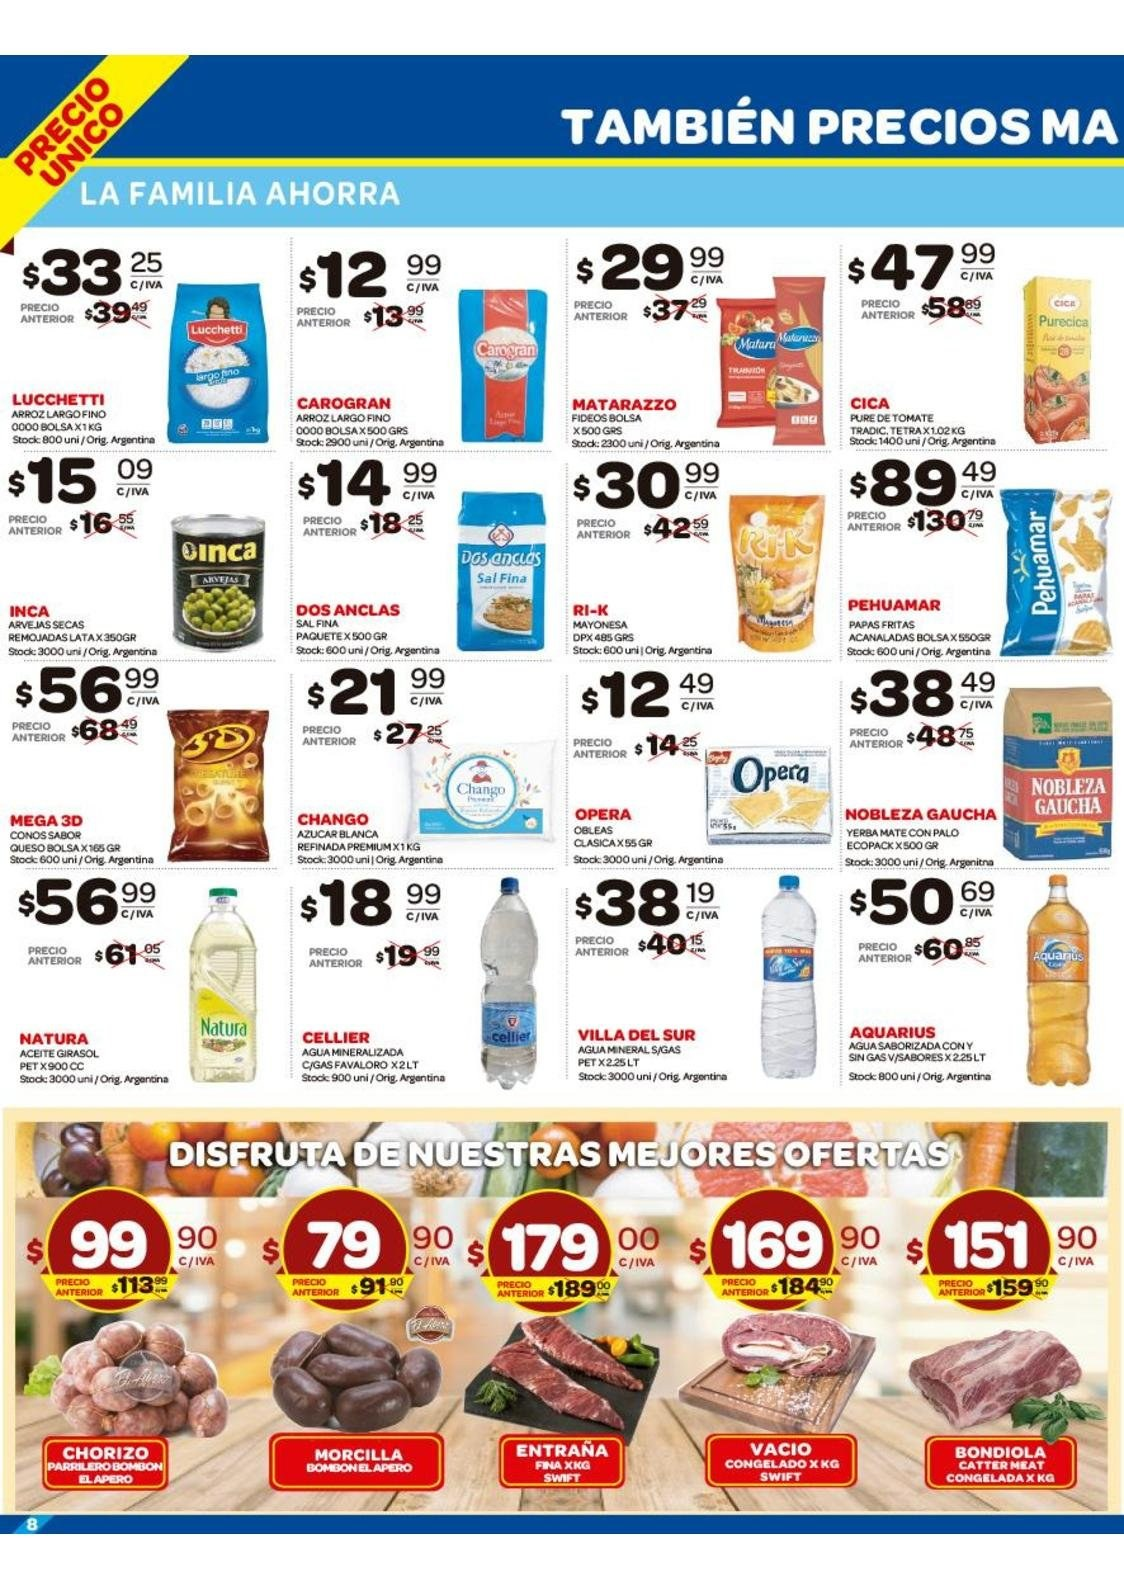 Folleto actual Carrefour - 7.1.2019 - 13.1.2019 - Ventas - queso 802aa2d5b0dd